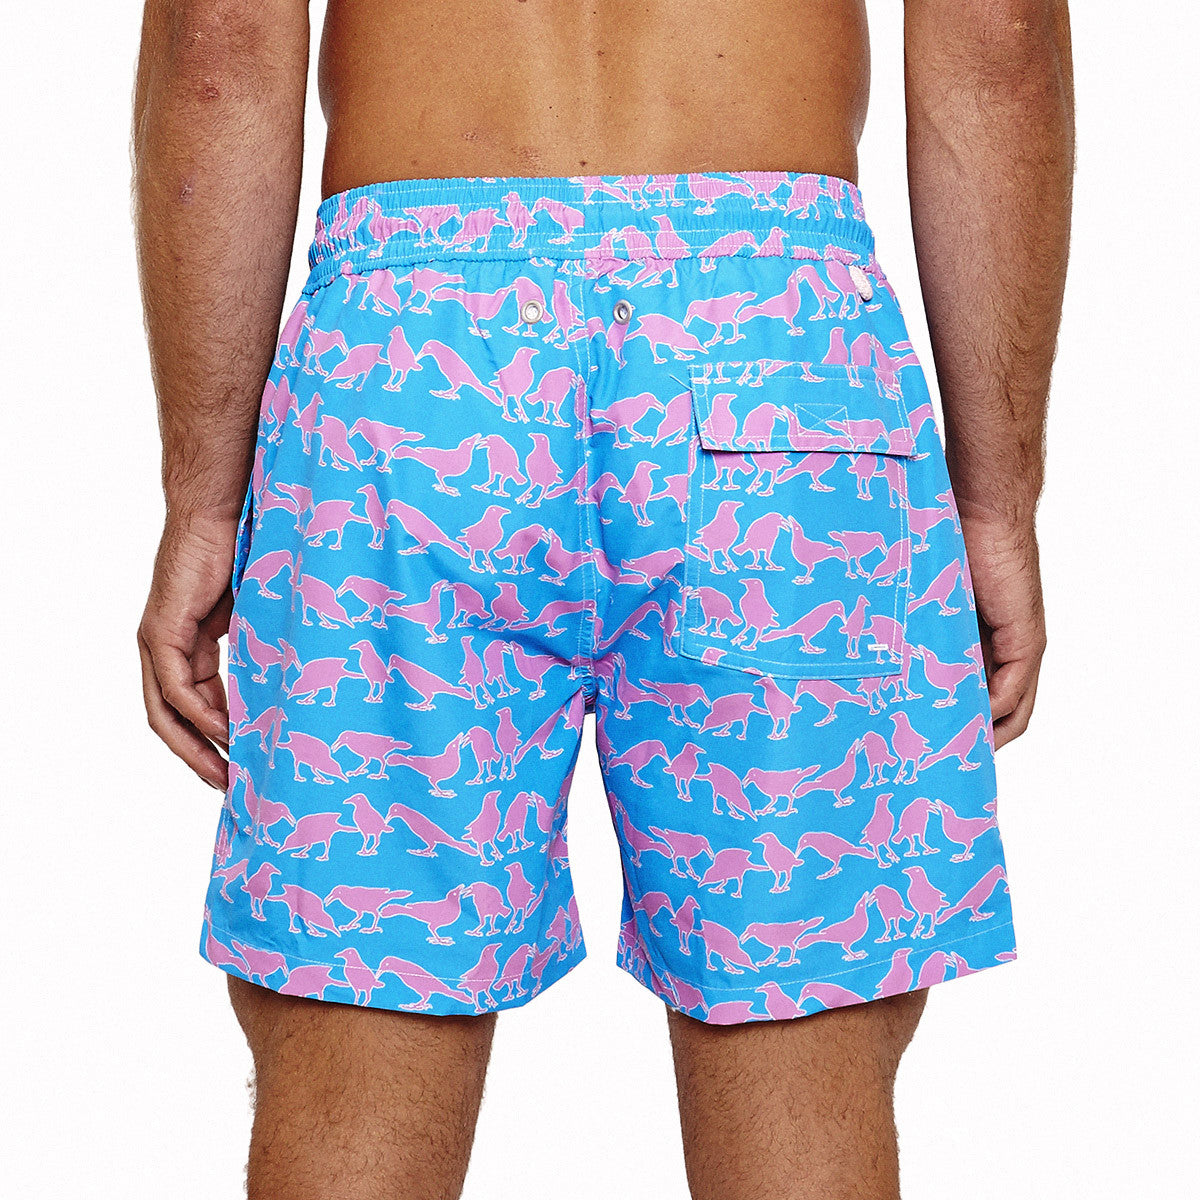 Mens Trunks (Grackle Blue/Pink) Back